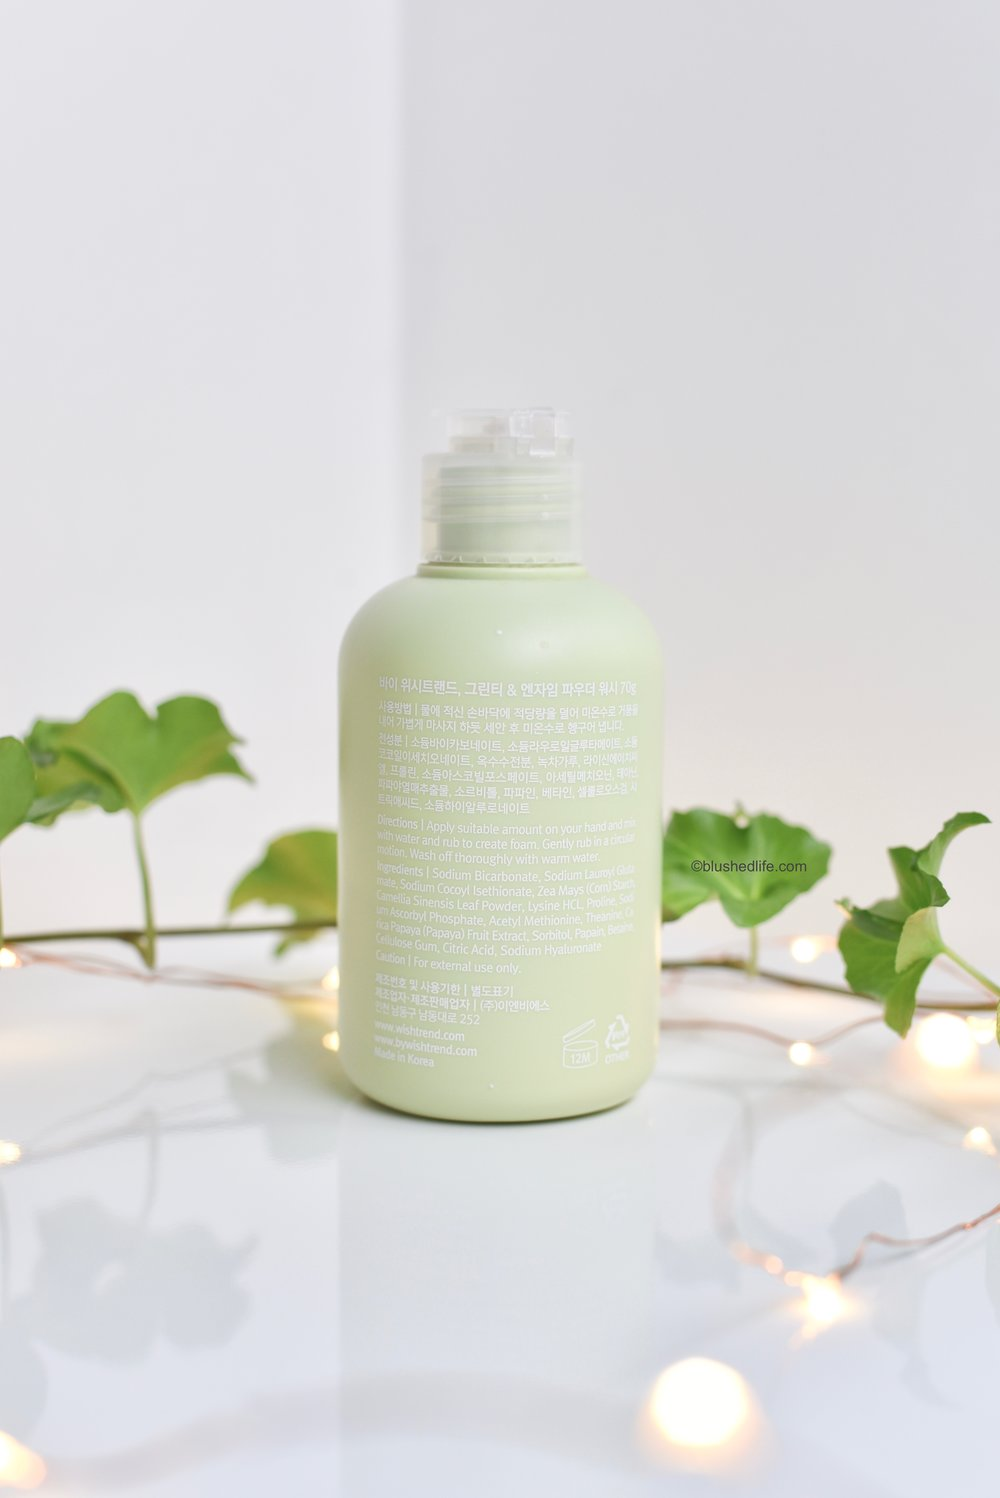 BYWISHTREND GREEN TEA & ENZYME POWDER WASH REVIEW_DSC_0184.jpg